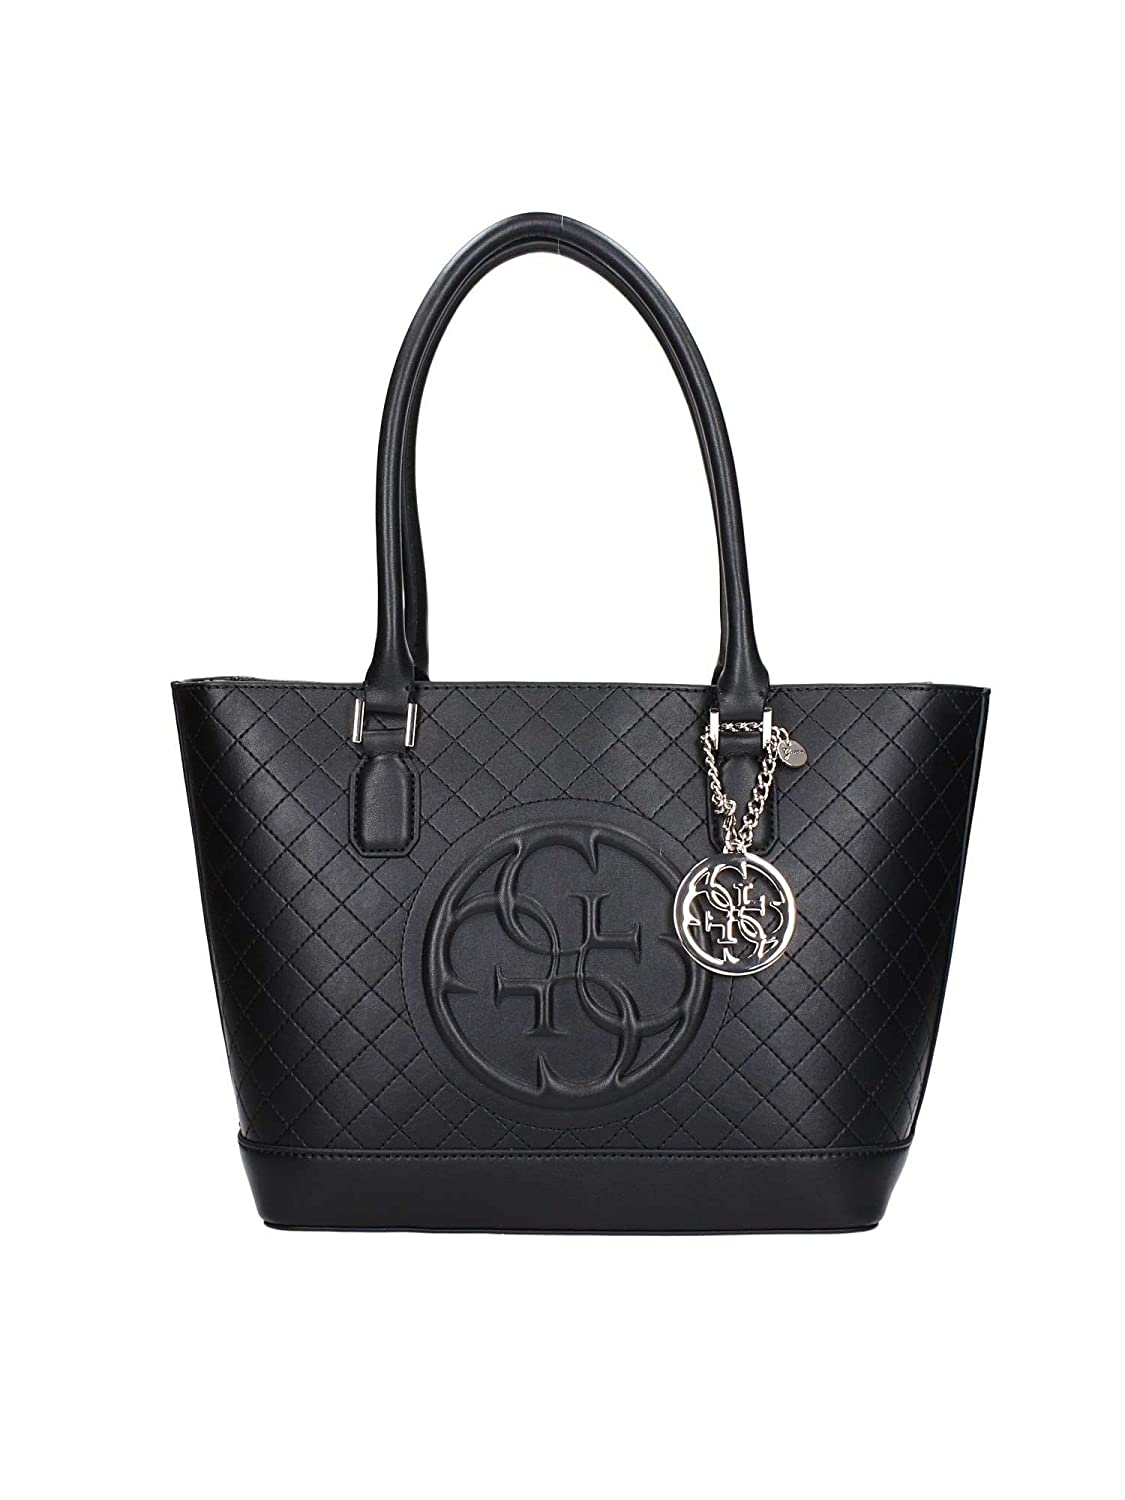 452f9782f4 Sac cabas Guess Korry Small Black: Amazon.co.uk: Shoes & Bags